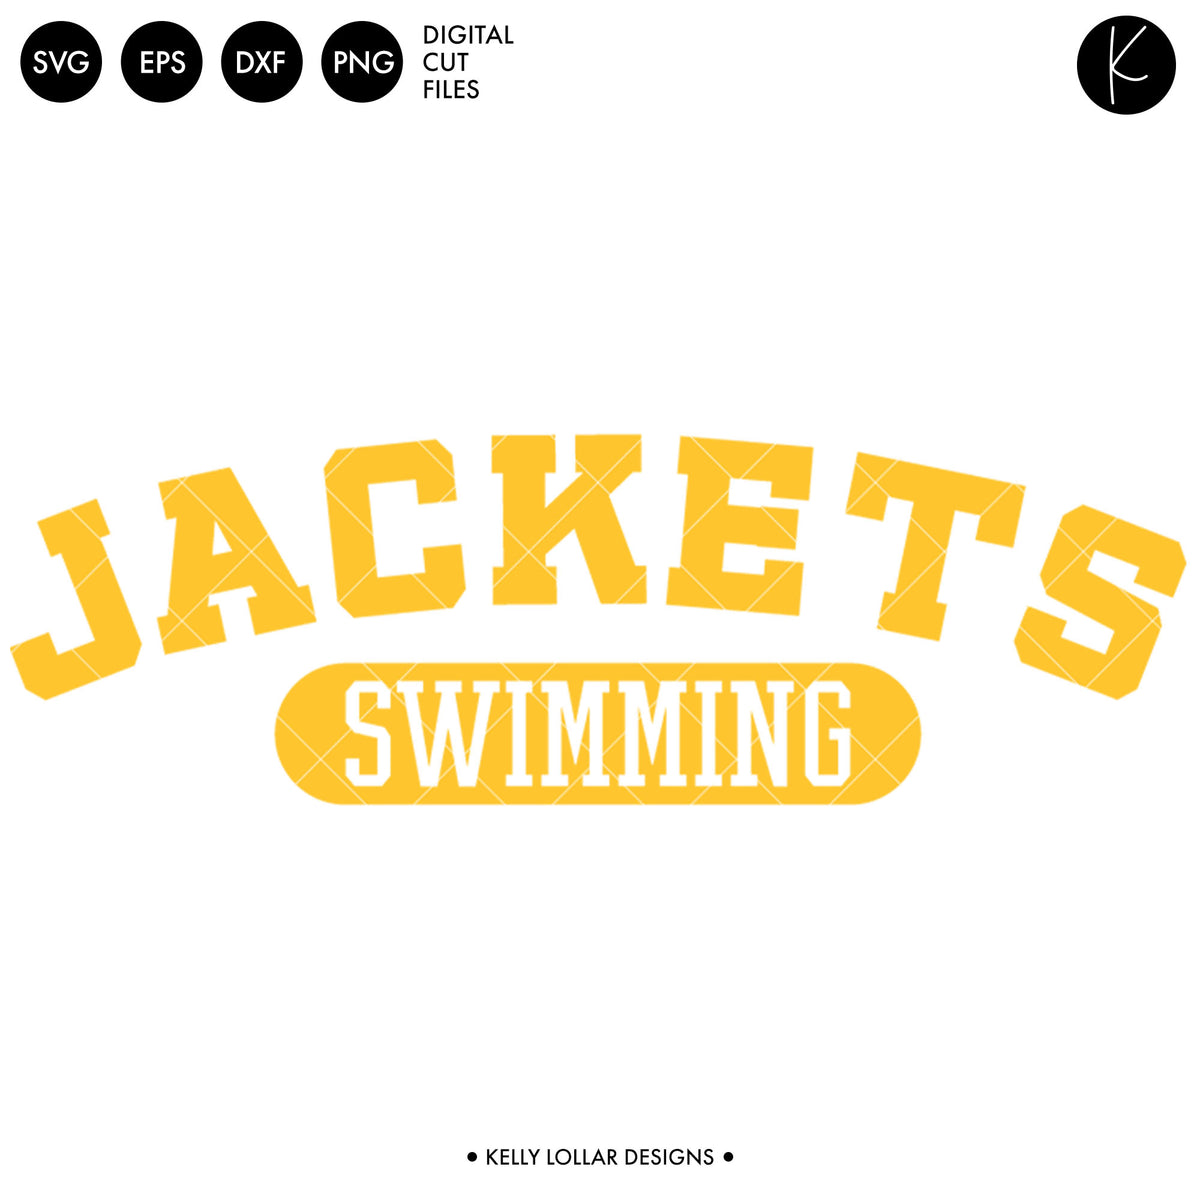 Jackets Swim Bundle | SVG DXF EPS PNG Cut Files